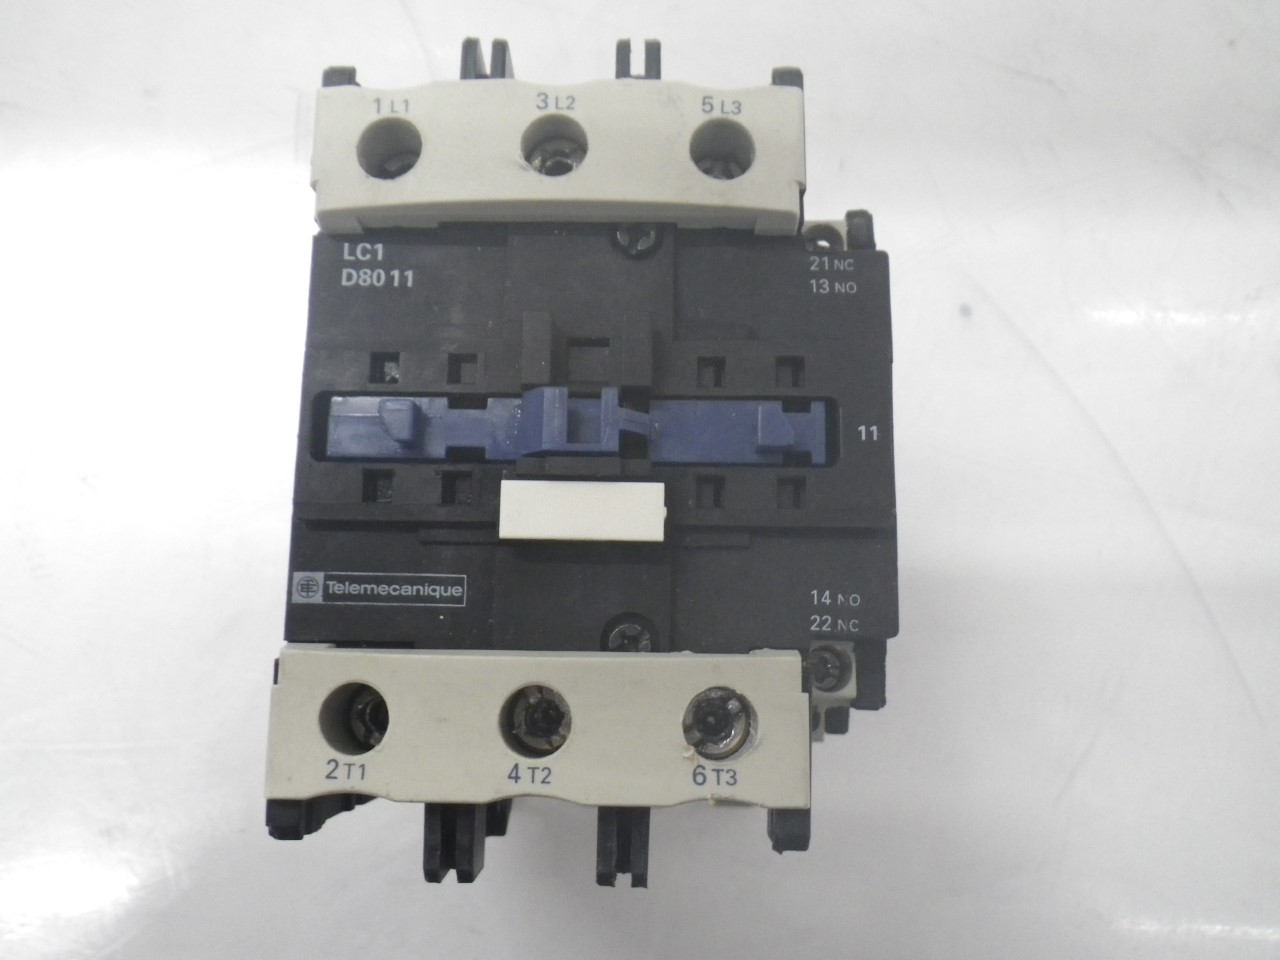 IMGP8343125A, 600V (9)LC1D8011 Telemecanique Contactor Magnetic Power Relay 125a, 600v (Used Tested)